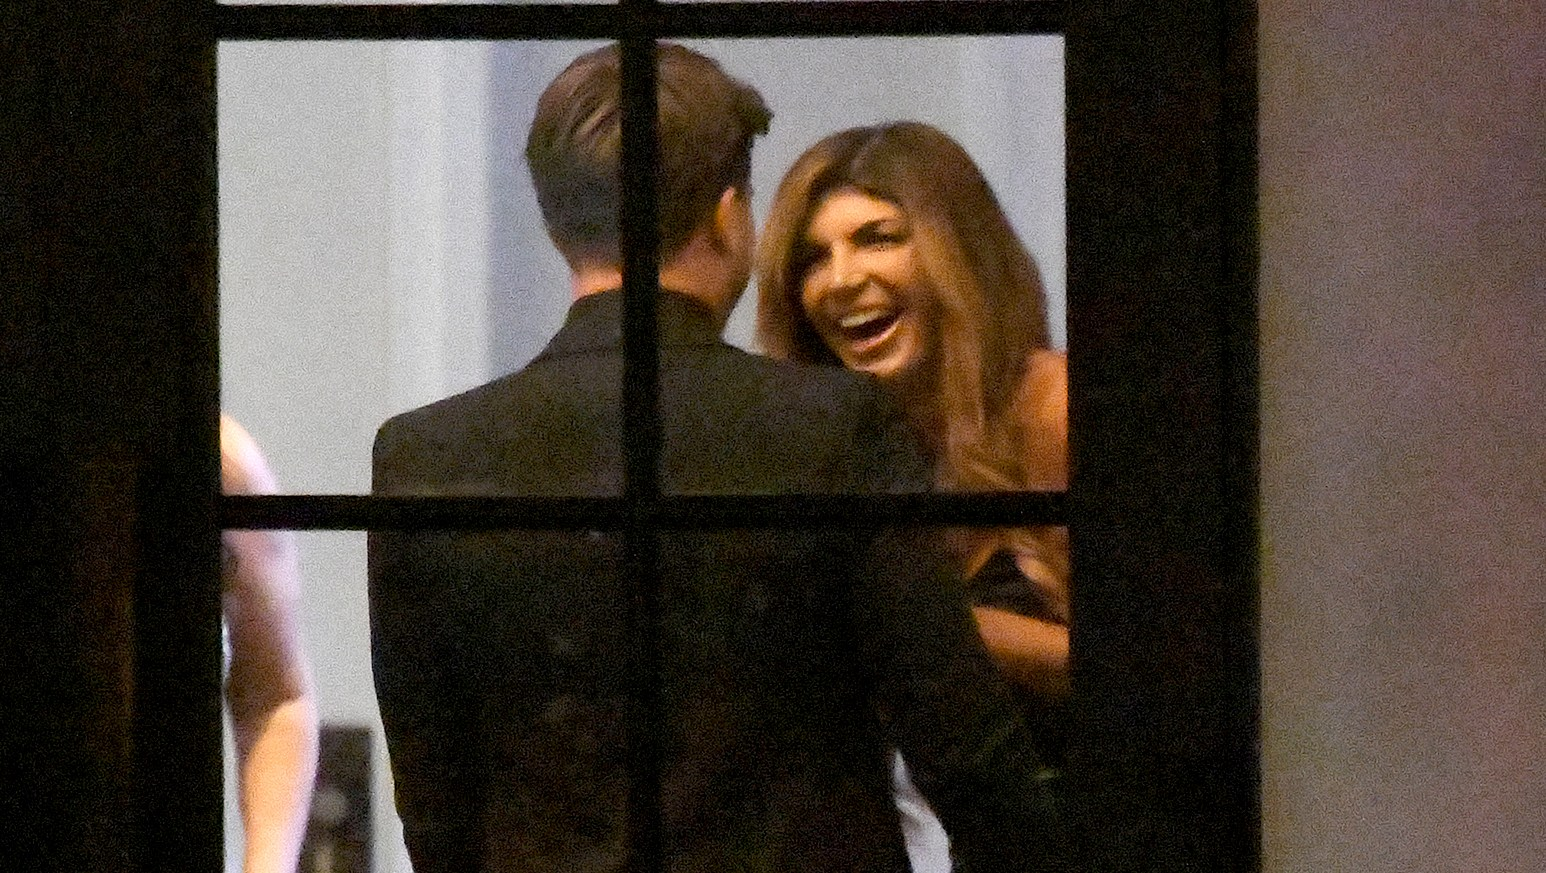 Teresa-Giudice-Spotted-With-Younger-Man-During-Joe's-Prison-Sentence